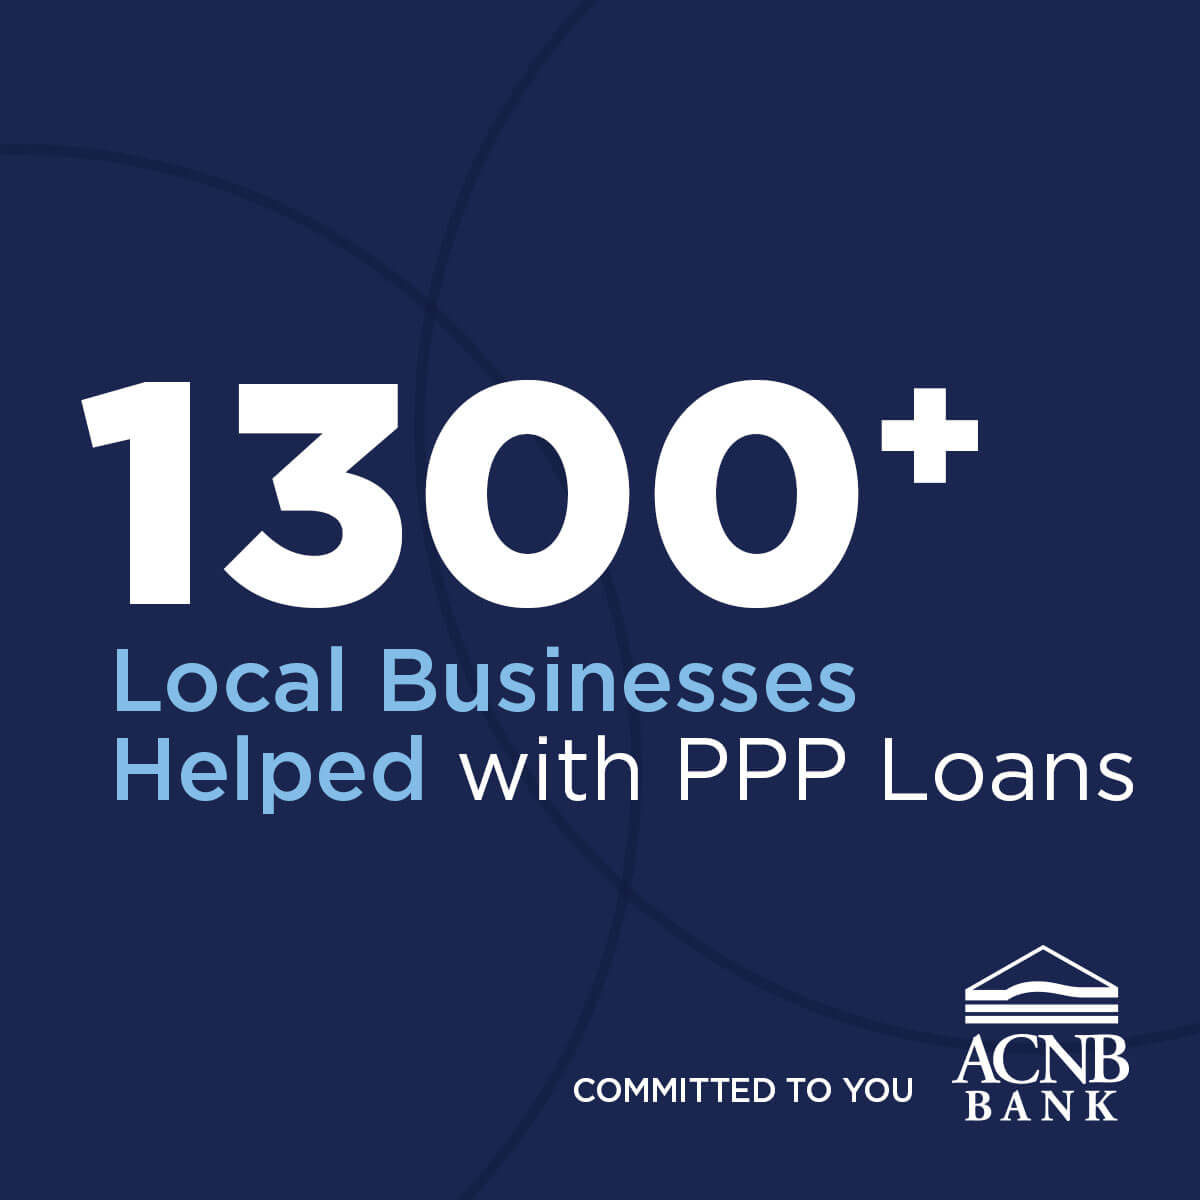 PPP Loans help local businesses